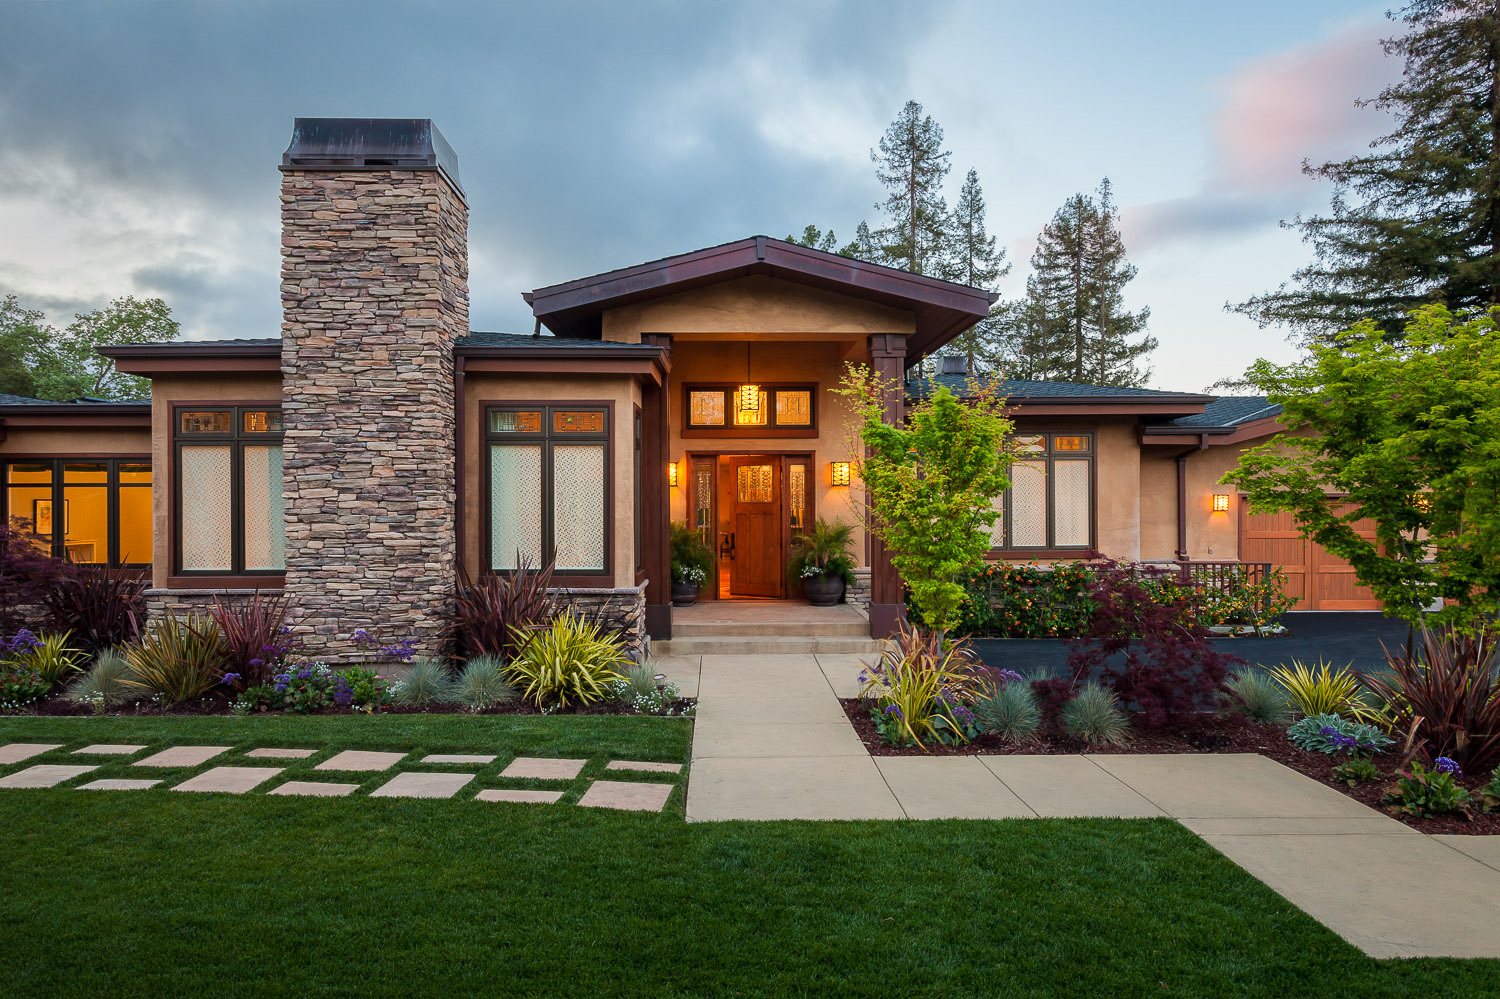 Top 15 house designs and architectural styles to ignite for New custom home plans